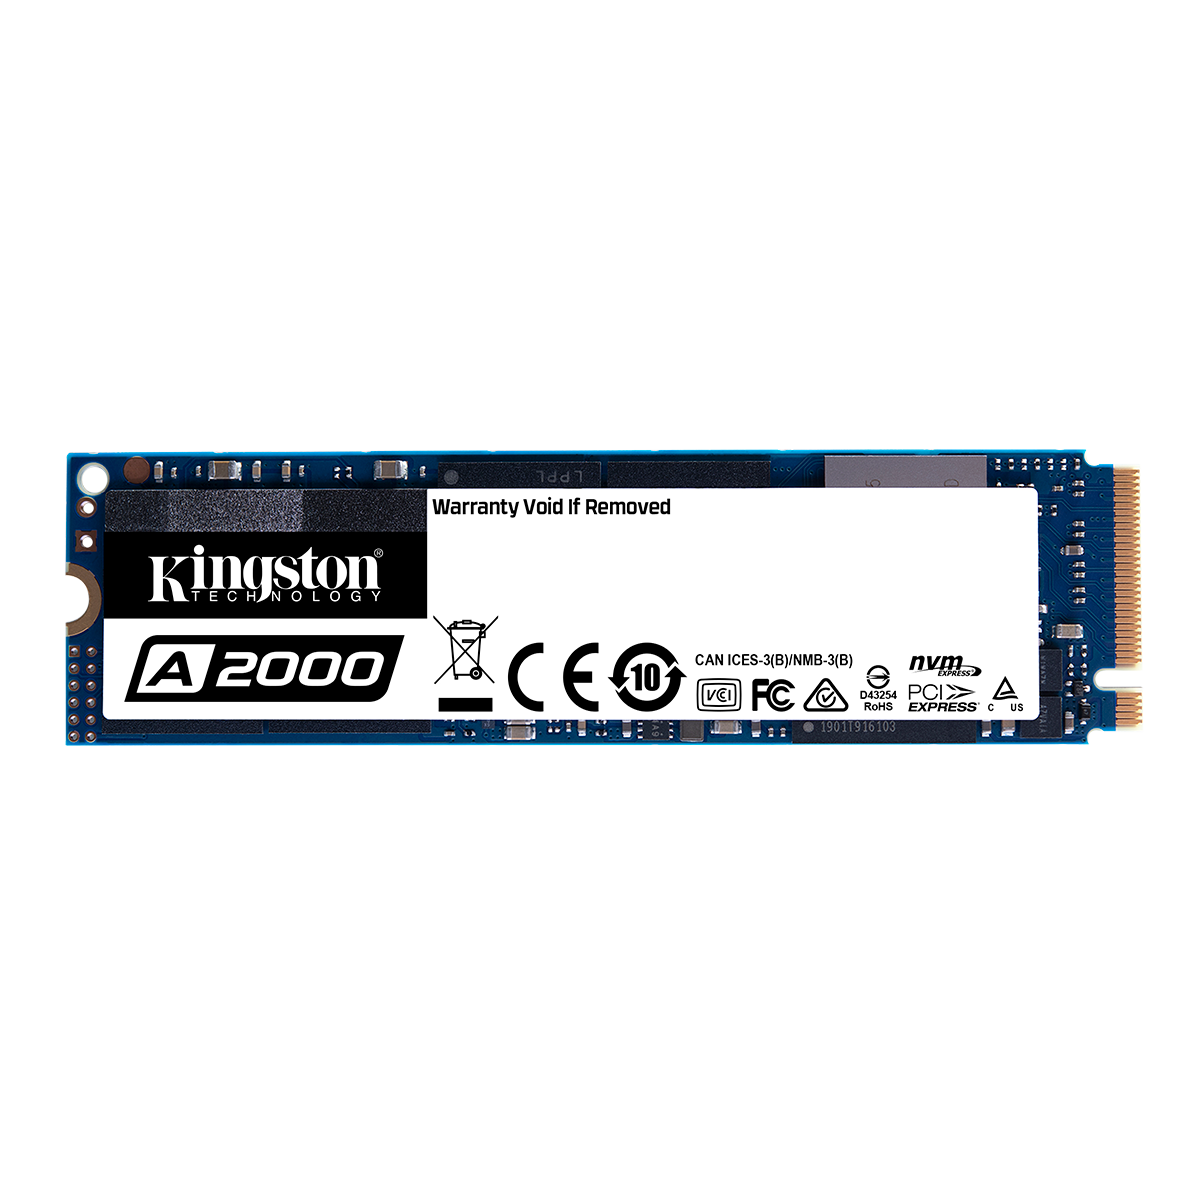 KINGSTON A2000 M.2 NVMe SSD 500GB